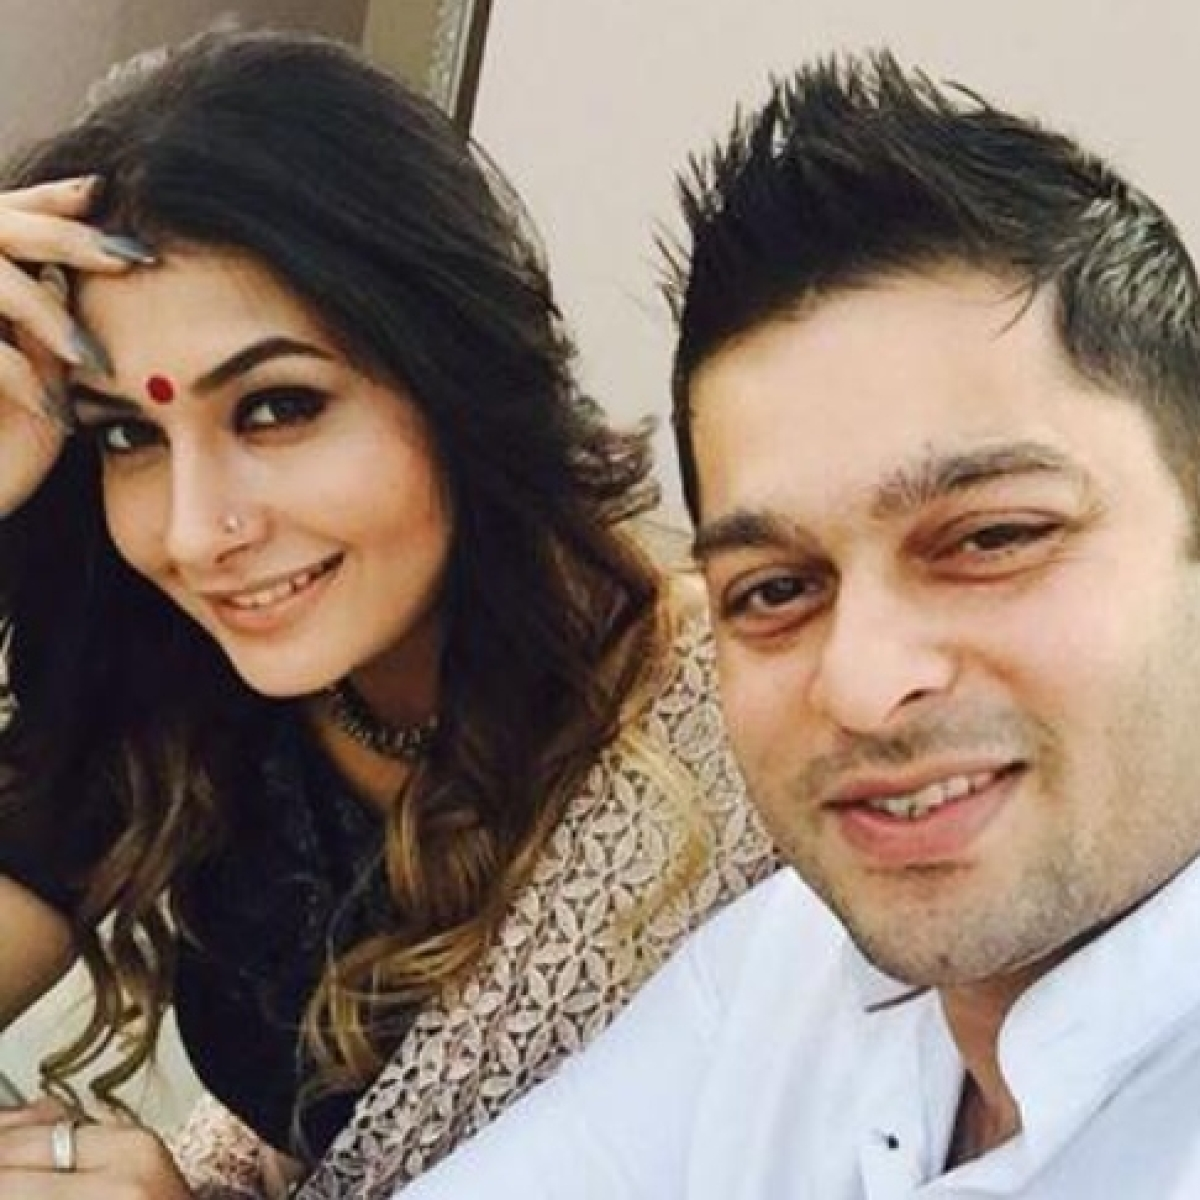 Pavitra Punia's 'husband' Sumit Maheshwari says they're still married, alleges the actress cheated on him four times